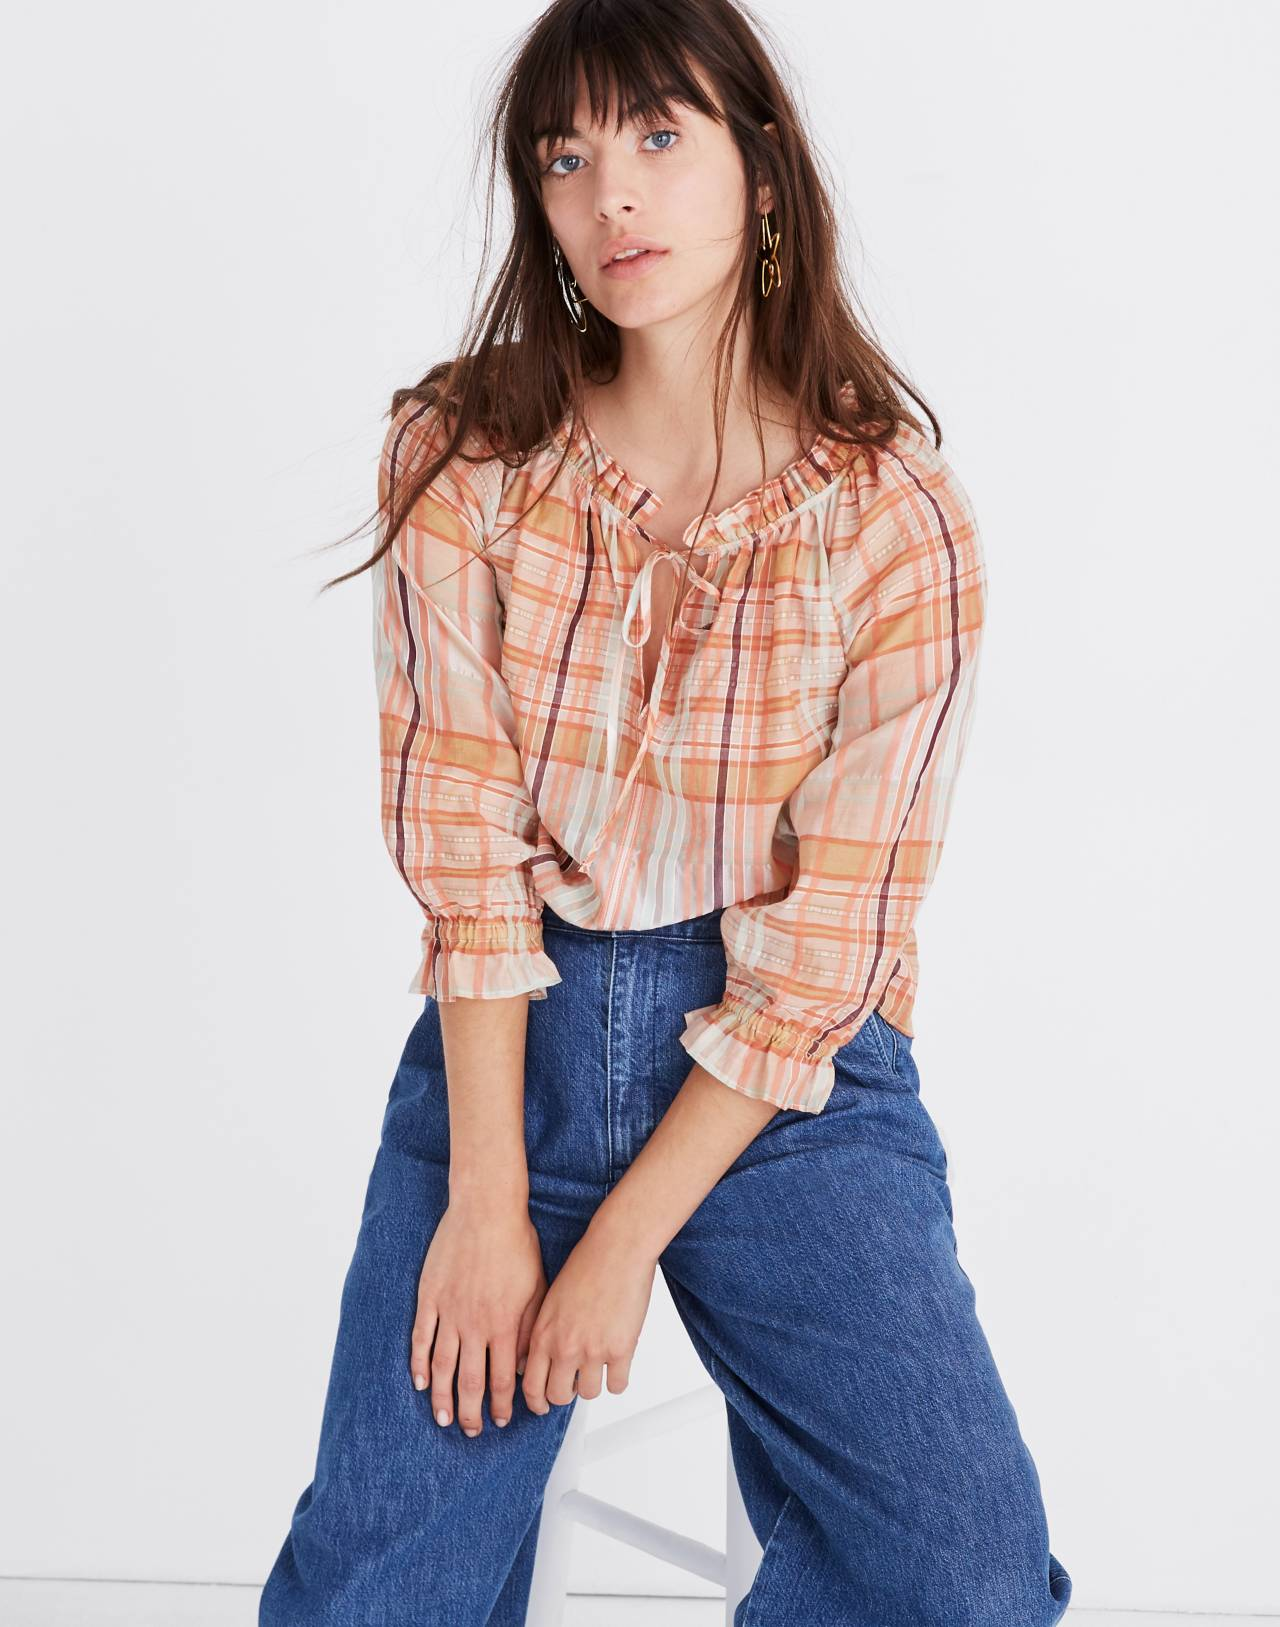 Plaid Tie-Neck Ruffle-Sleeve Top in wilton plaid bashful blush image 1